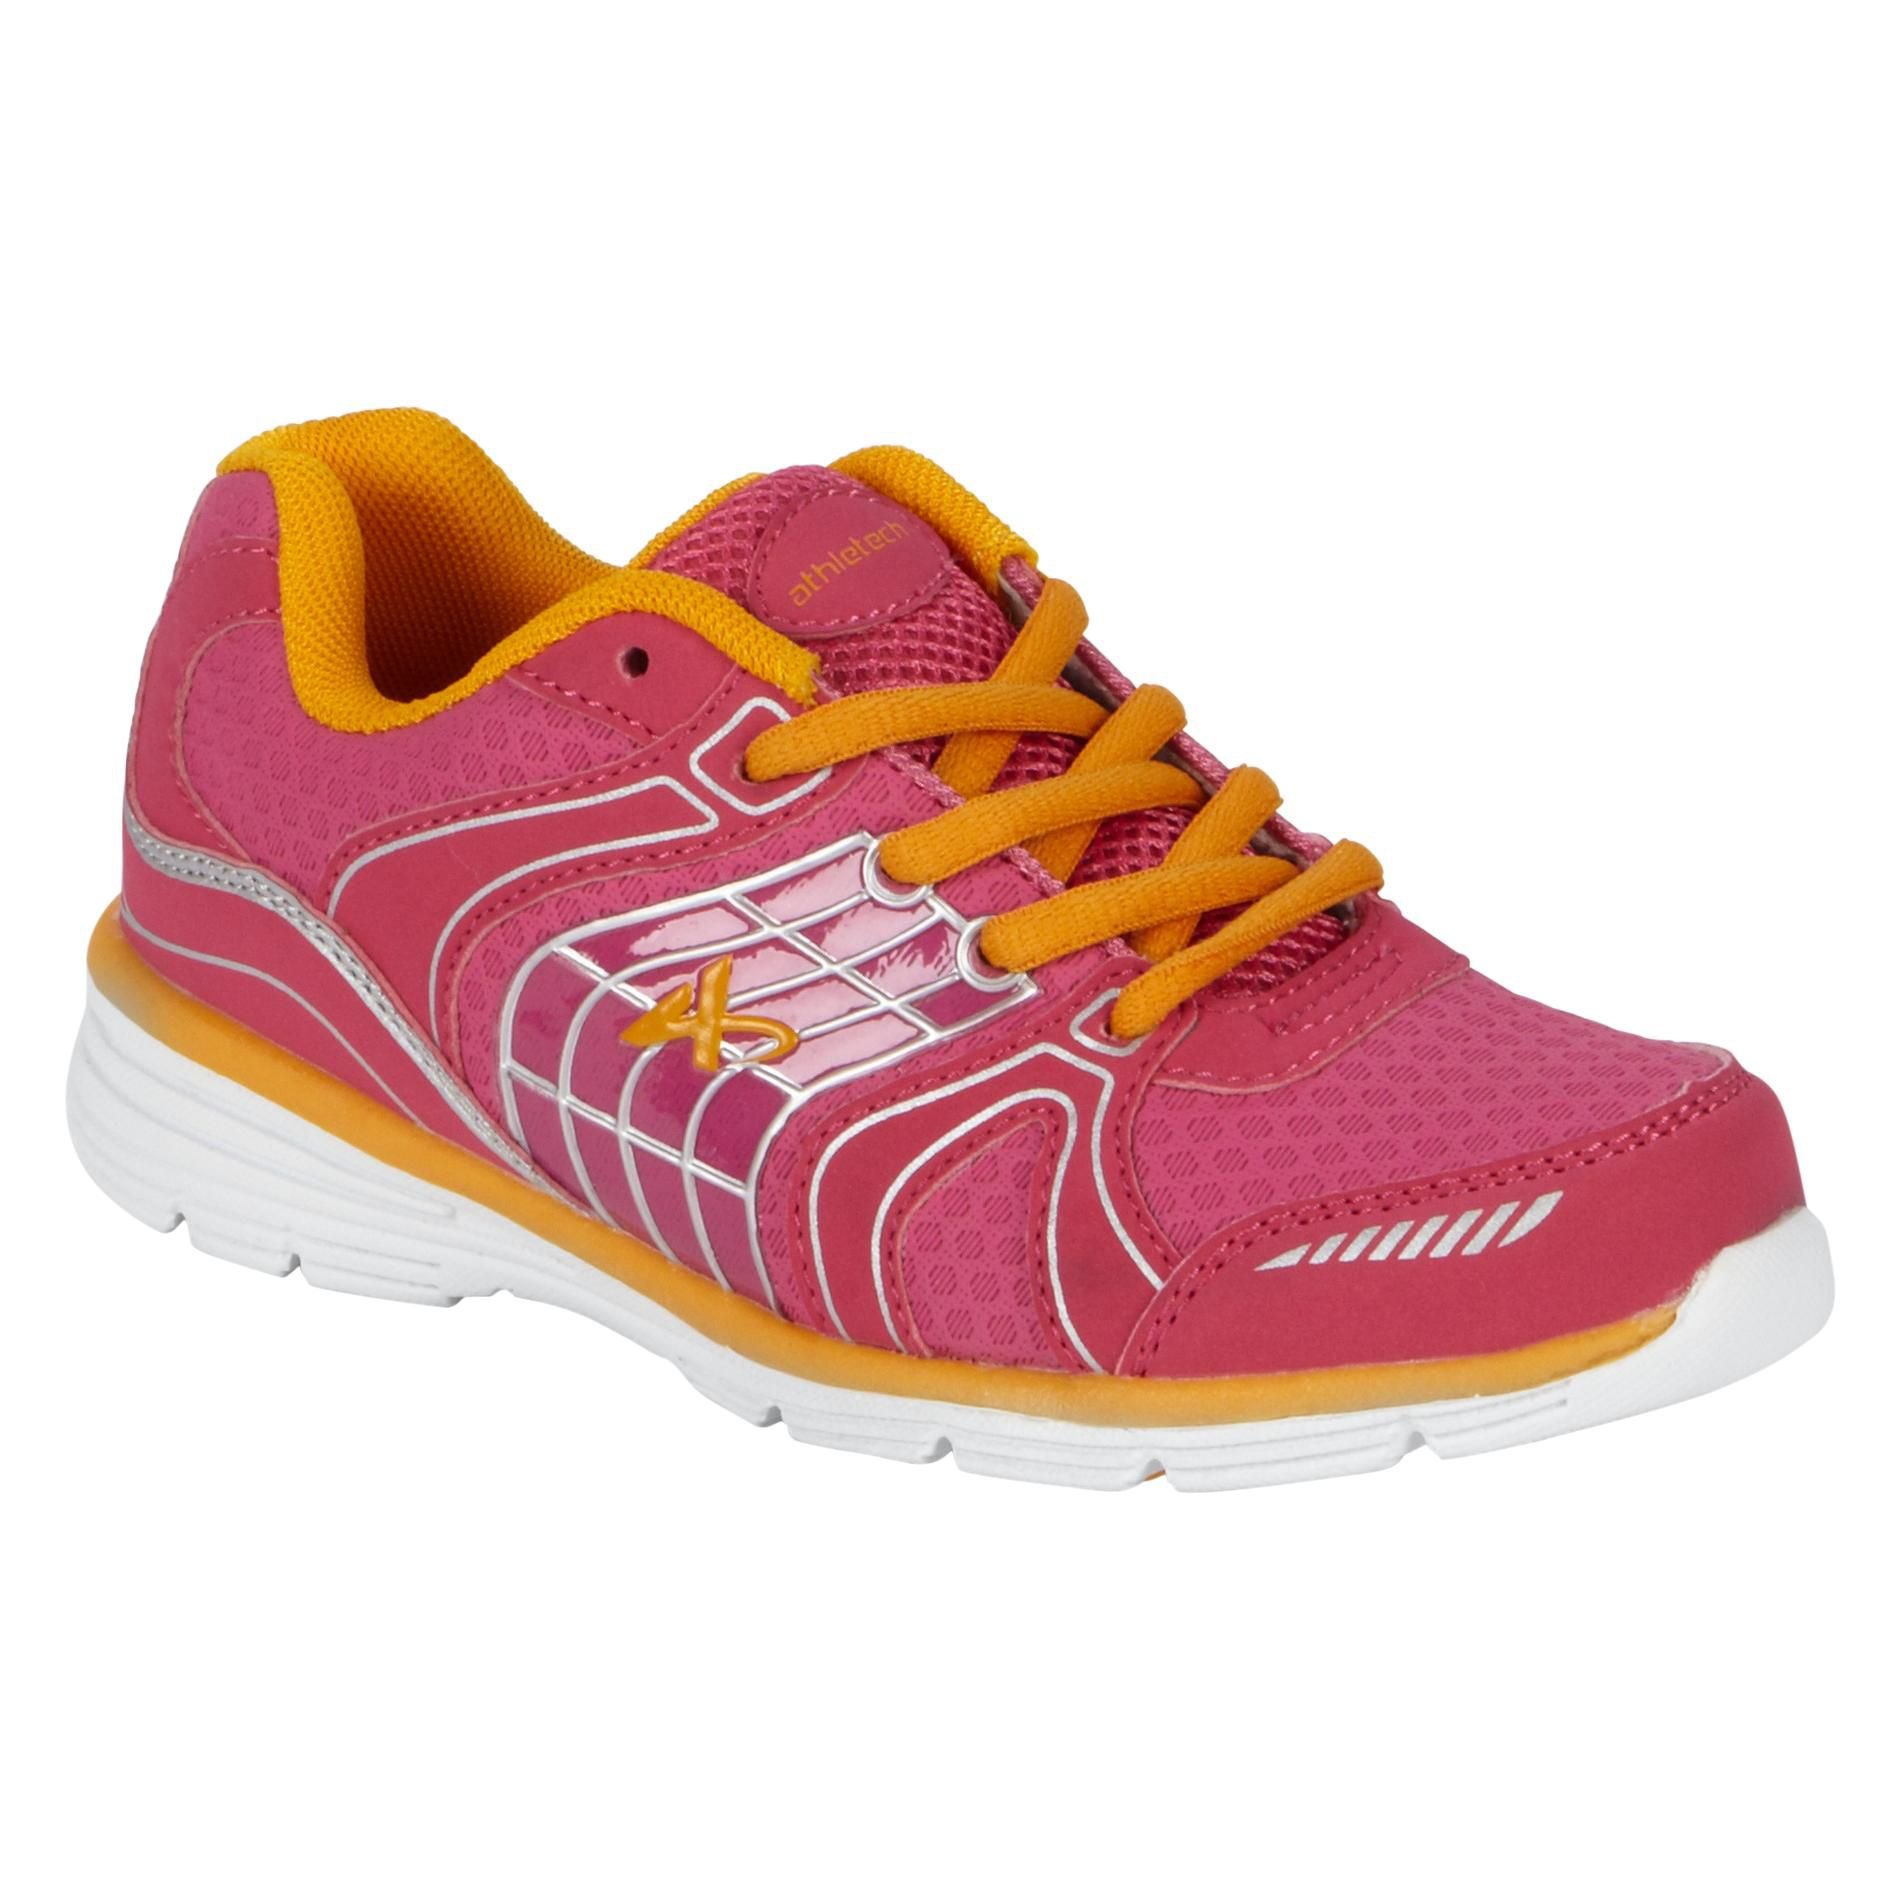 Girl's LuLu Athletic Shoe - Fuchsia - Every